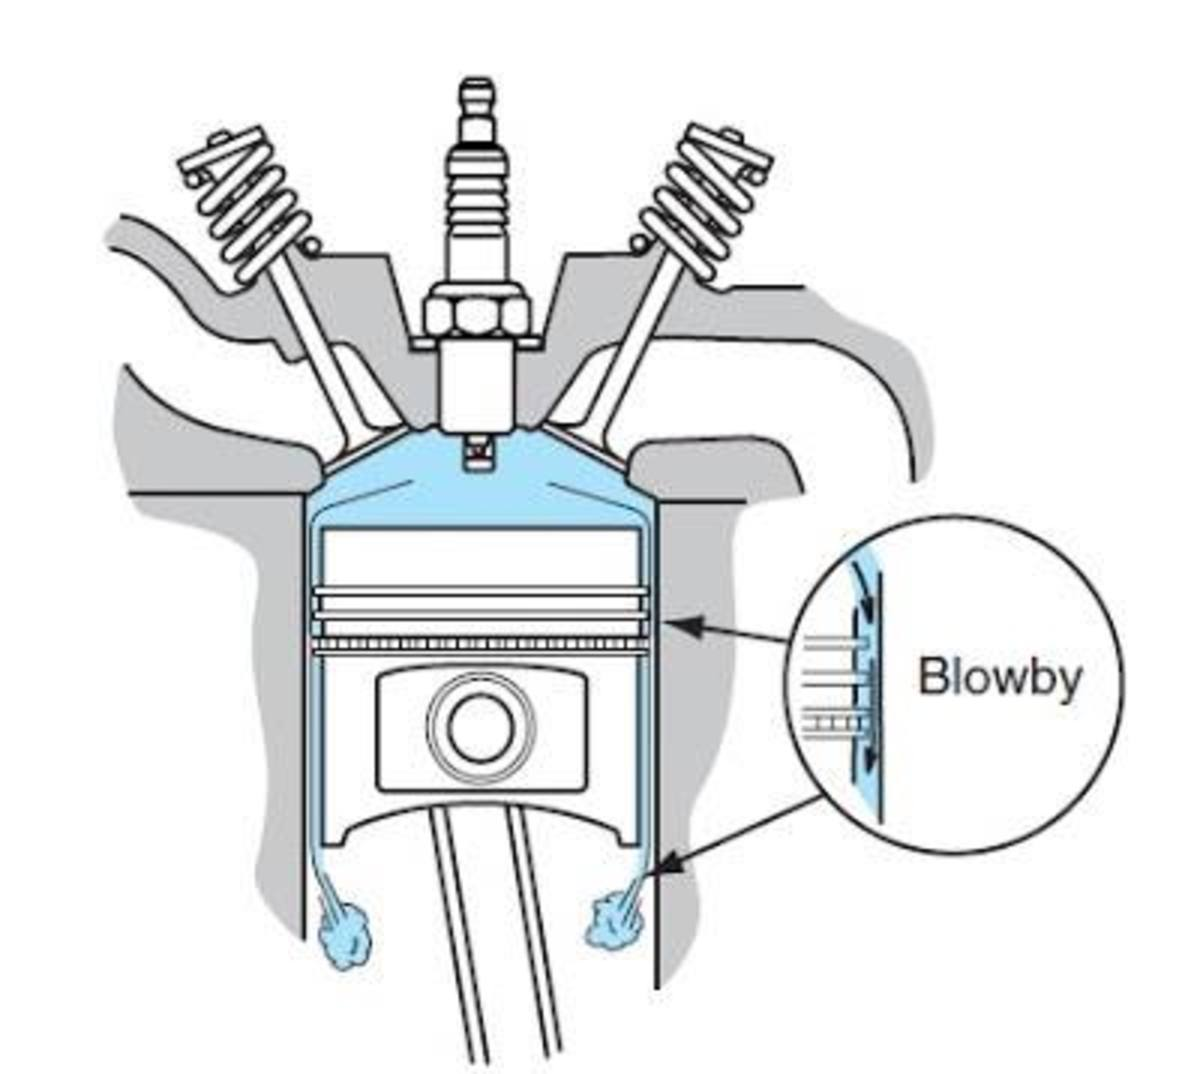 How engine blow-by gases are formed